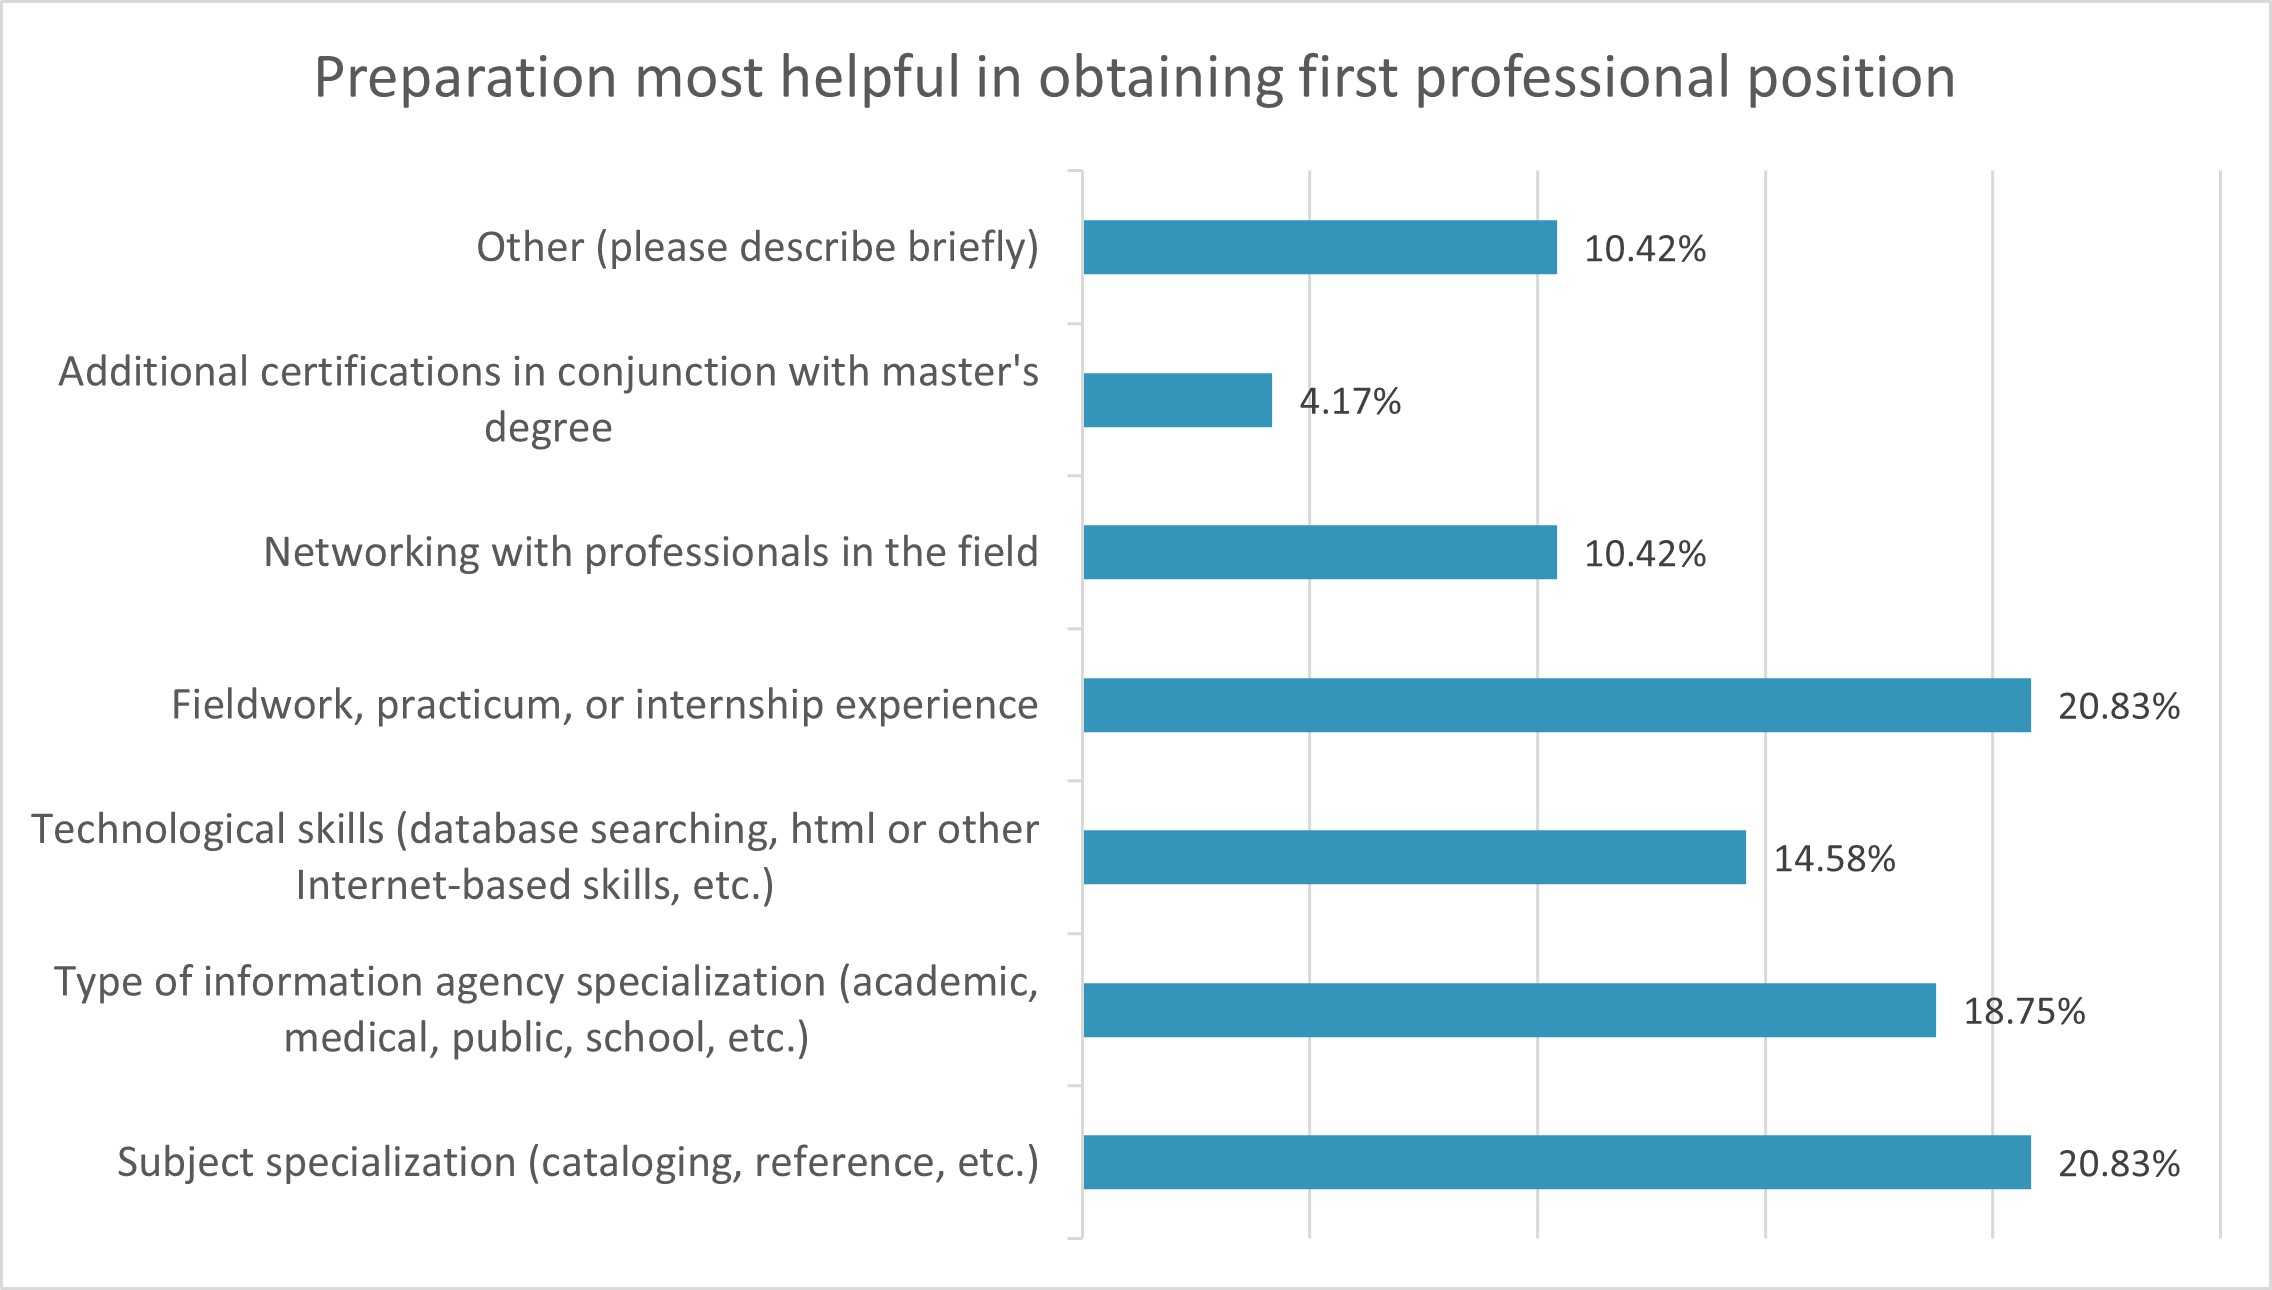 Table Illustrating Data from 2020 Survey: Preparation most helpful for obtaining first professional position